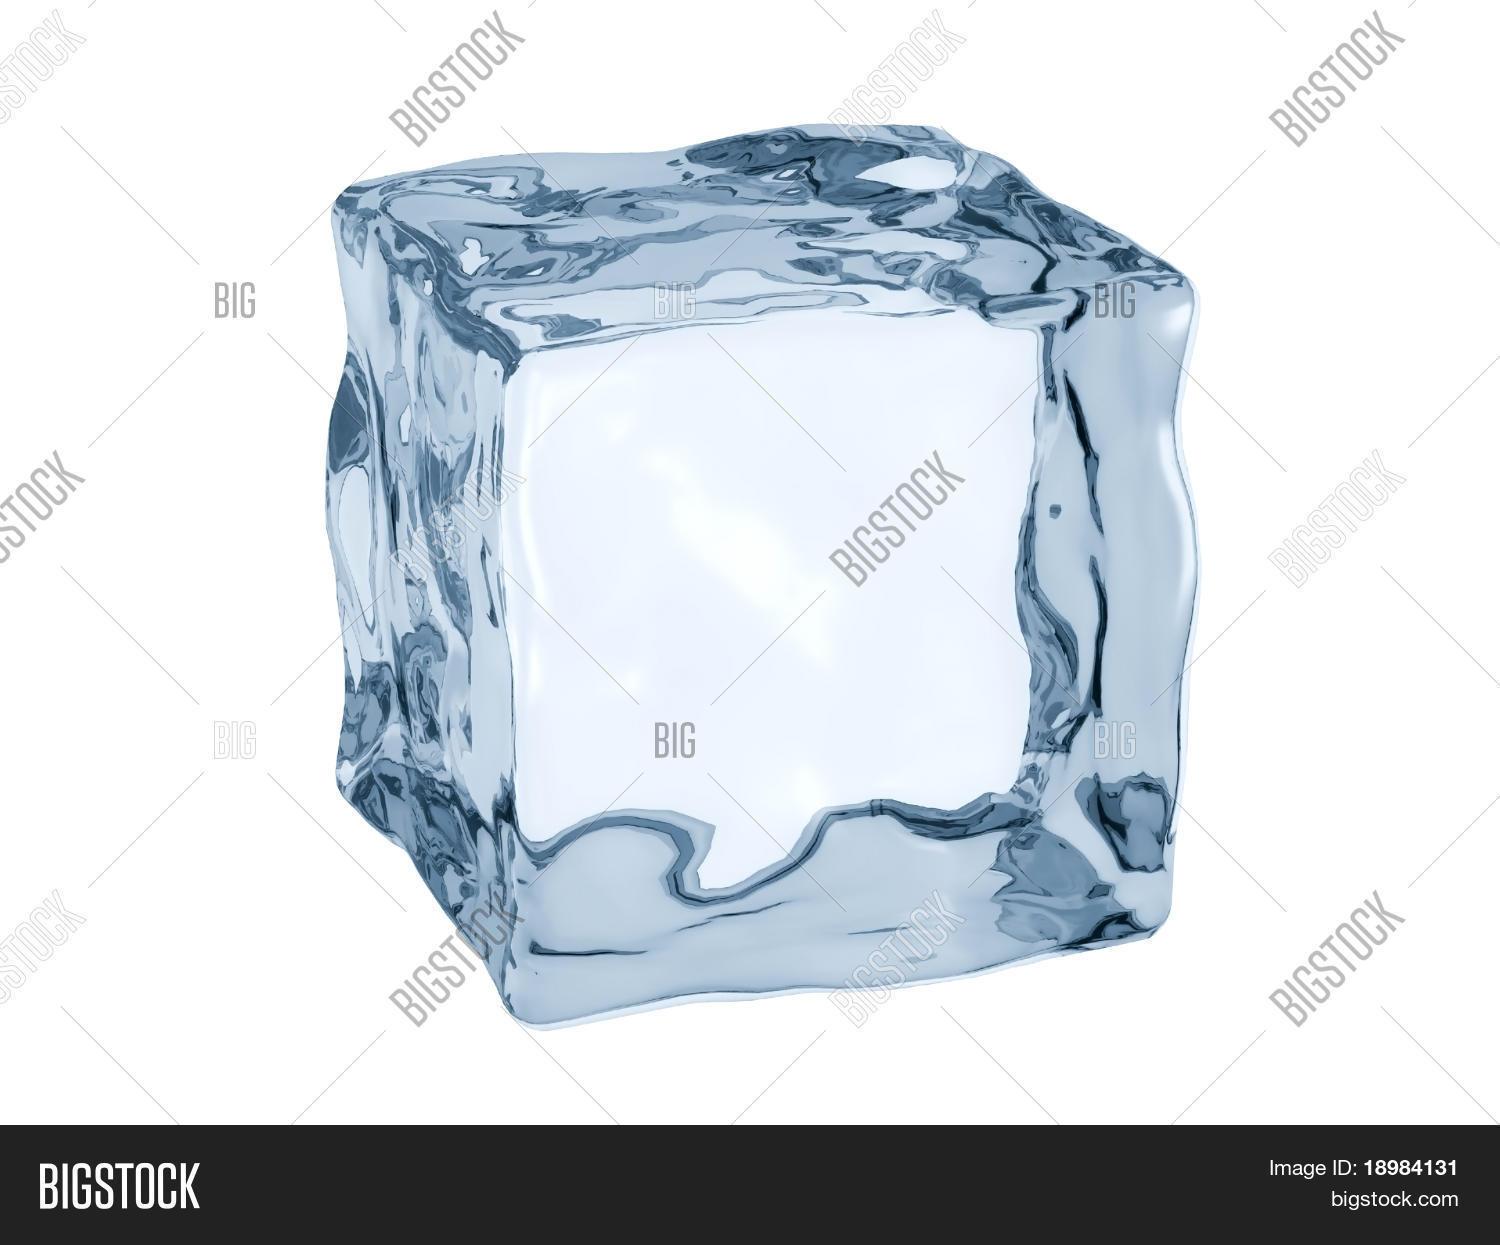 3d Render Ice Cube Image Photo Free Trial Bigstock